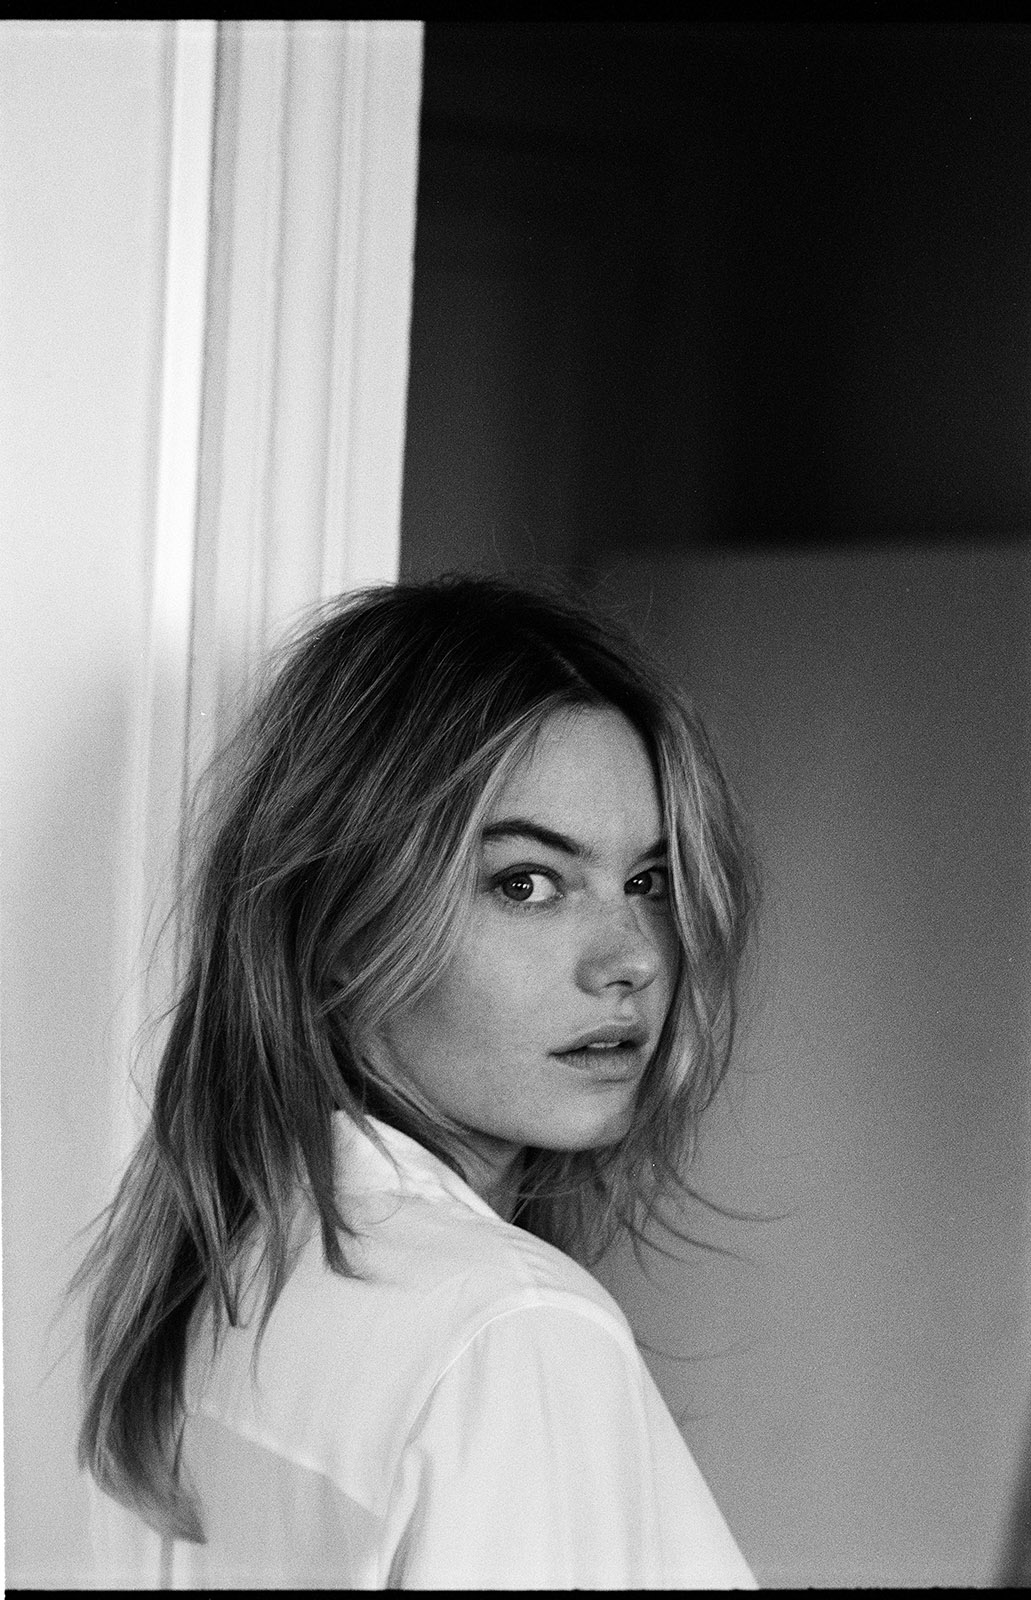 Camille Rowe by Quentin de Briey